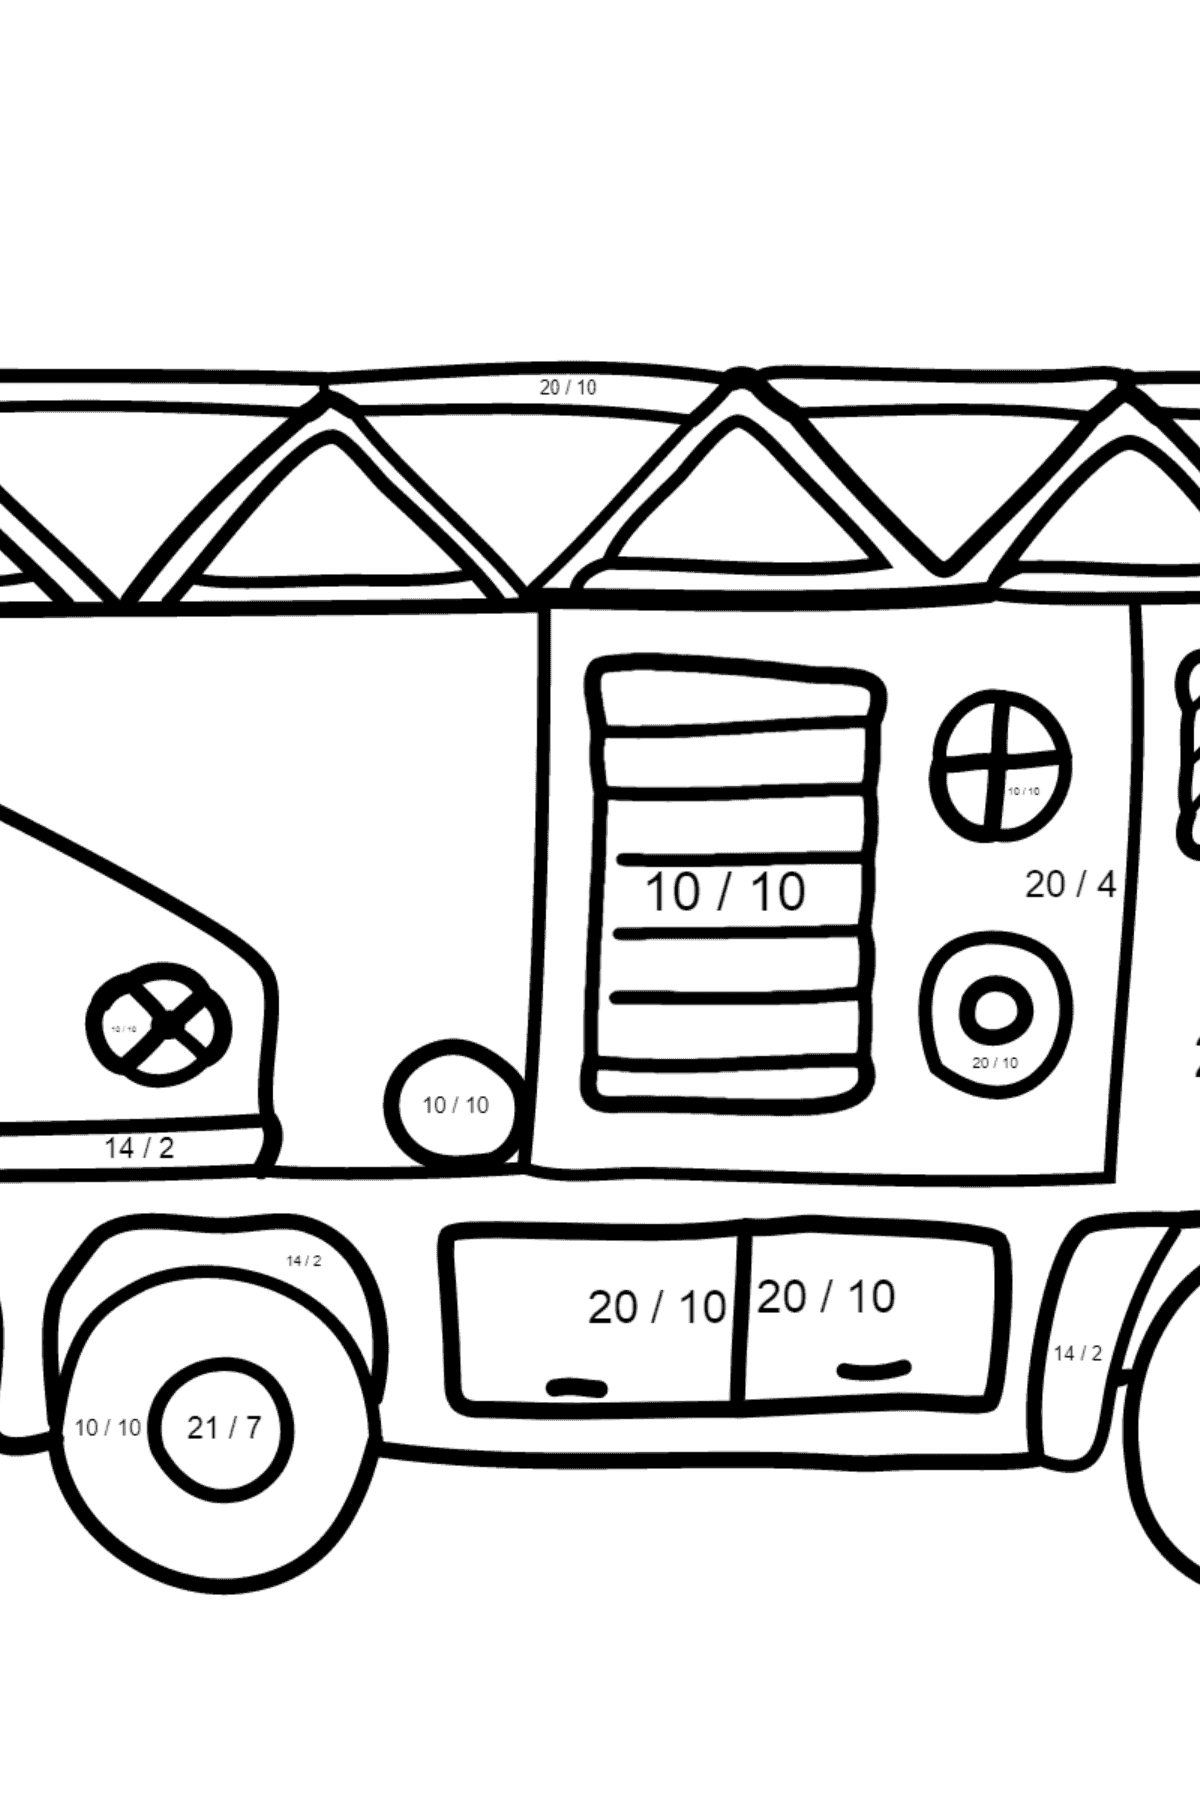 Coloring Page - A Fire Truck for Children  - Color by Number Division